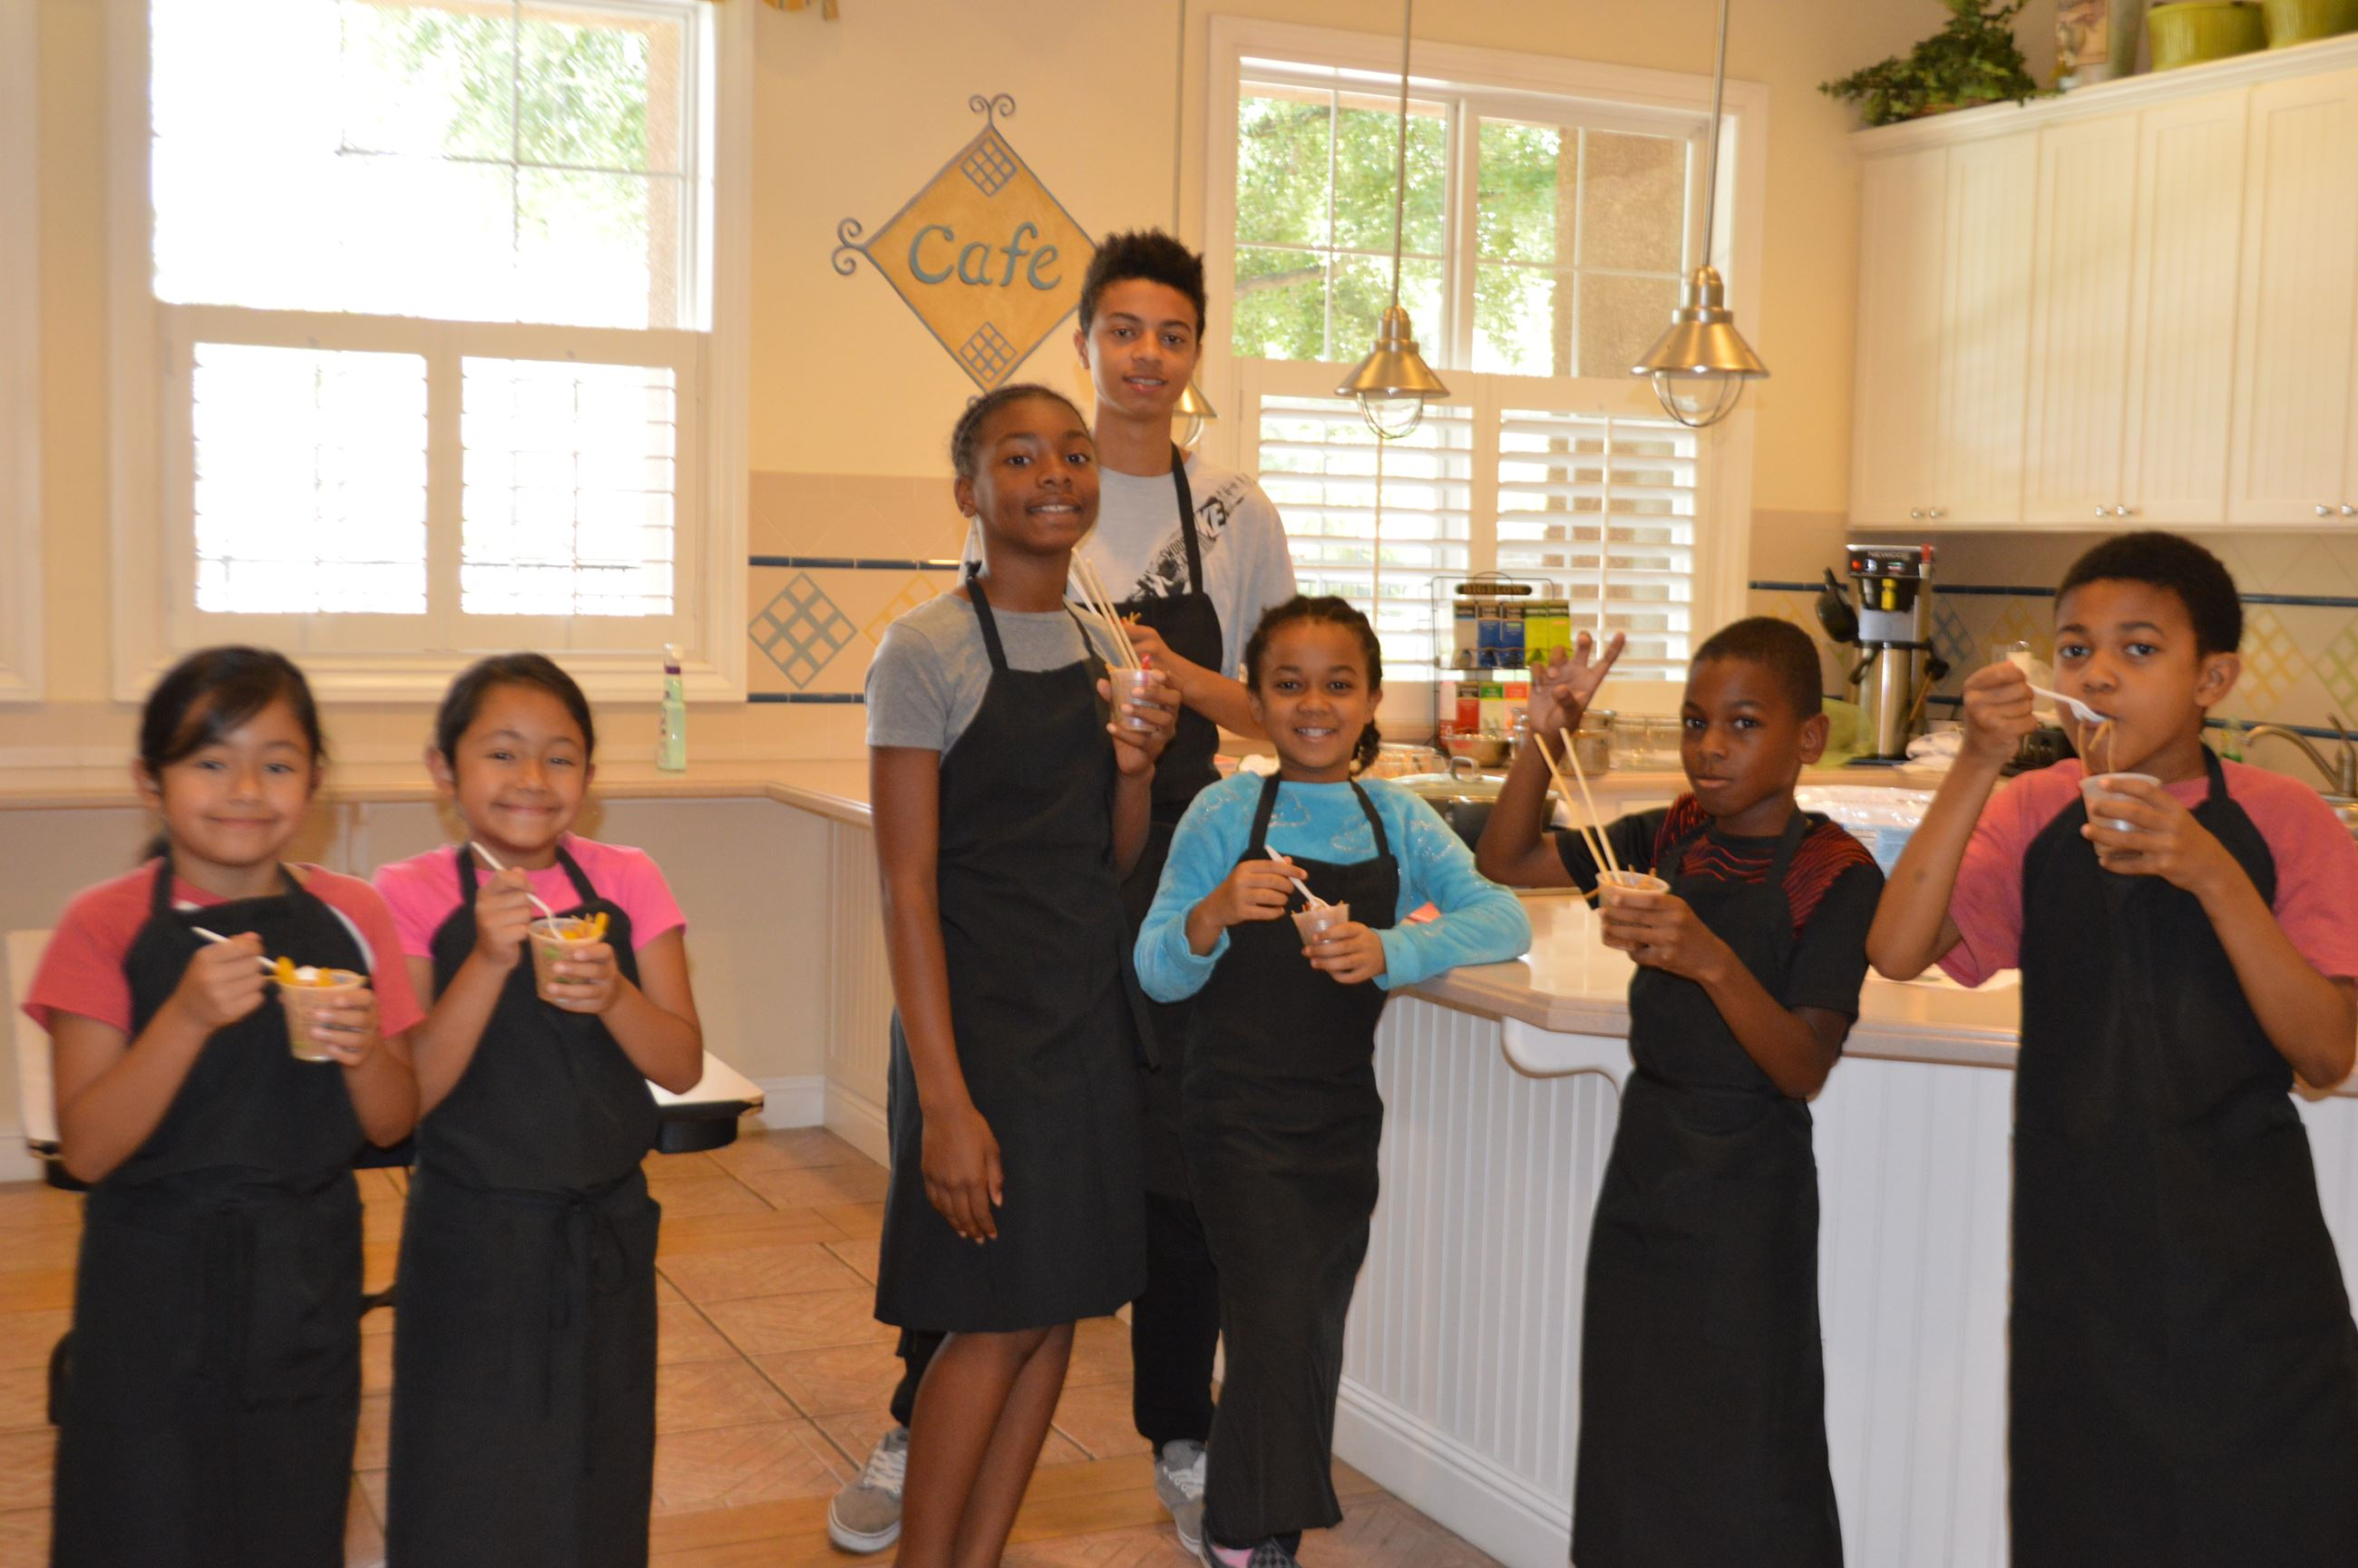 Jr Chef students pose in kitchen holding their food